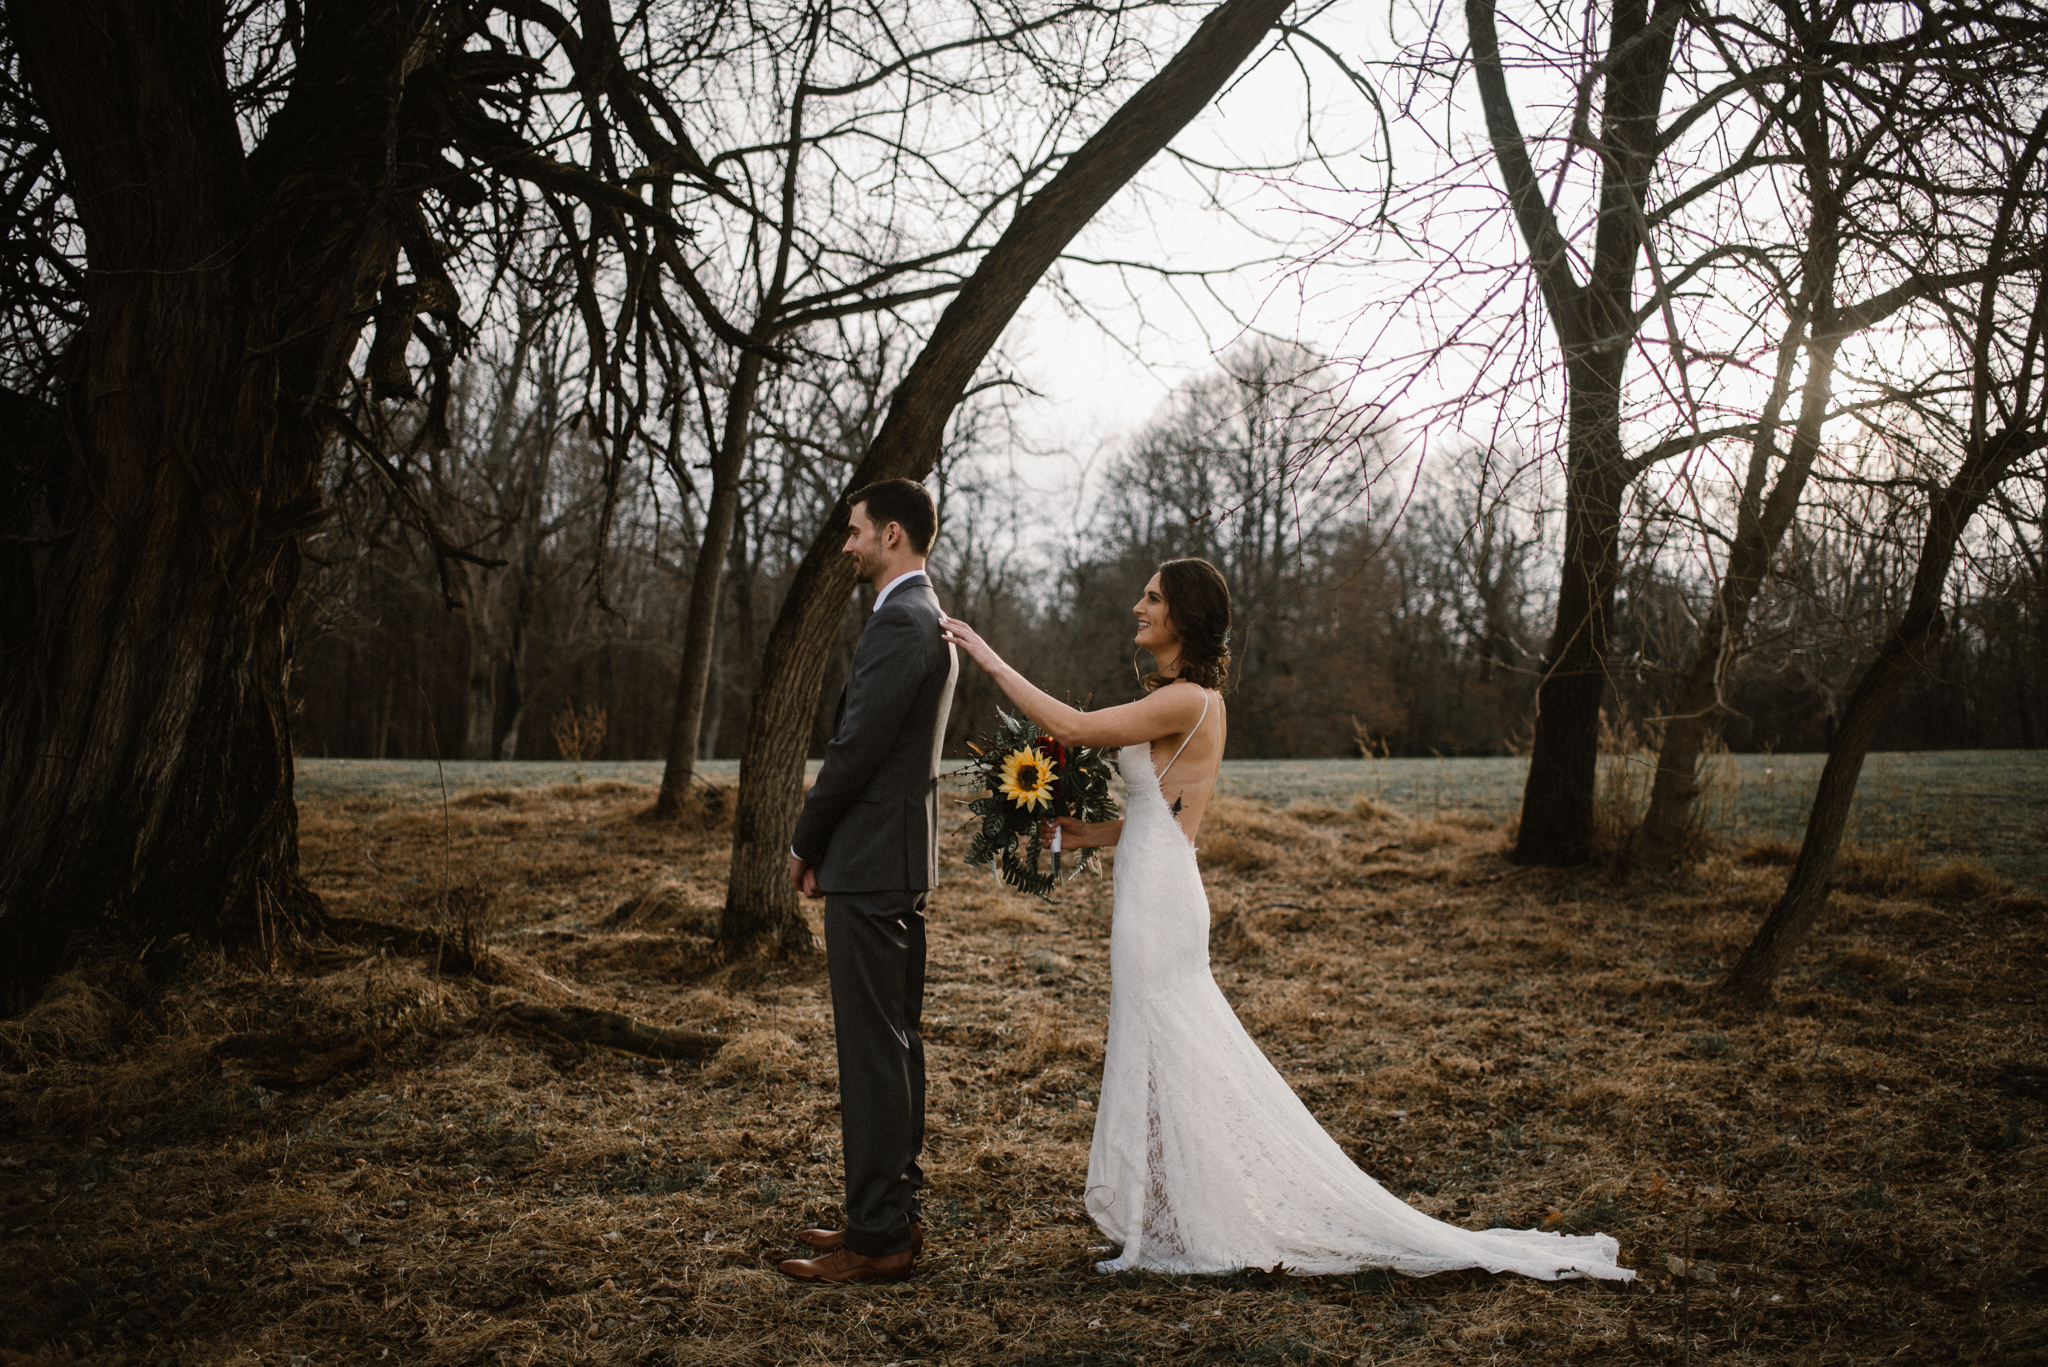 Shenandoah National Park Elopement Wedding Photographer and Planner_29.jpg